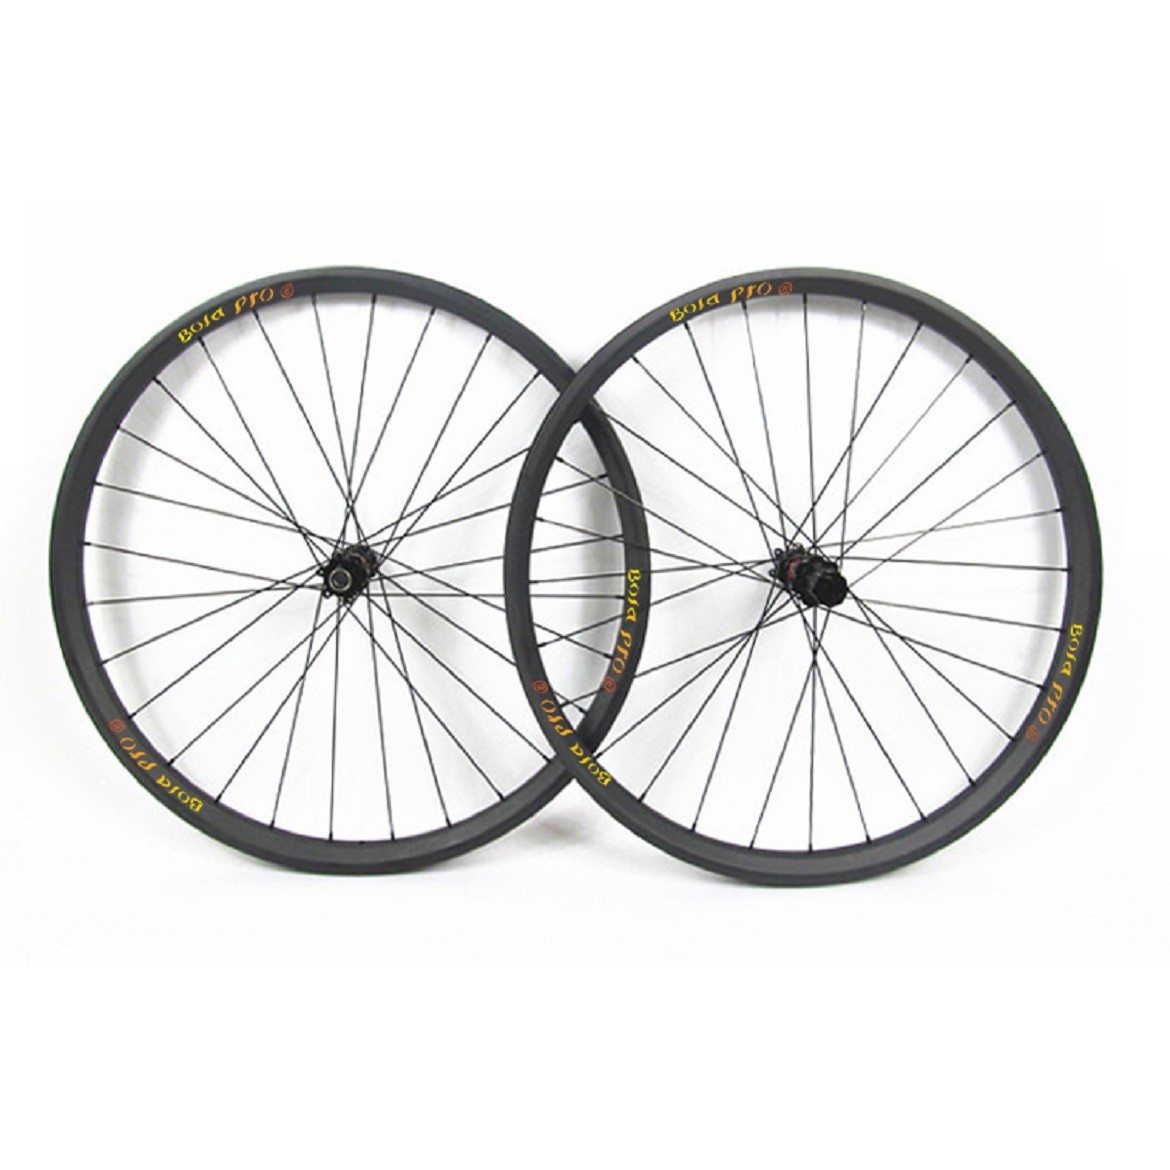 29er 27mm wide MTB carbon wheelset with enduro bearing hub